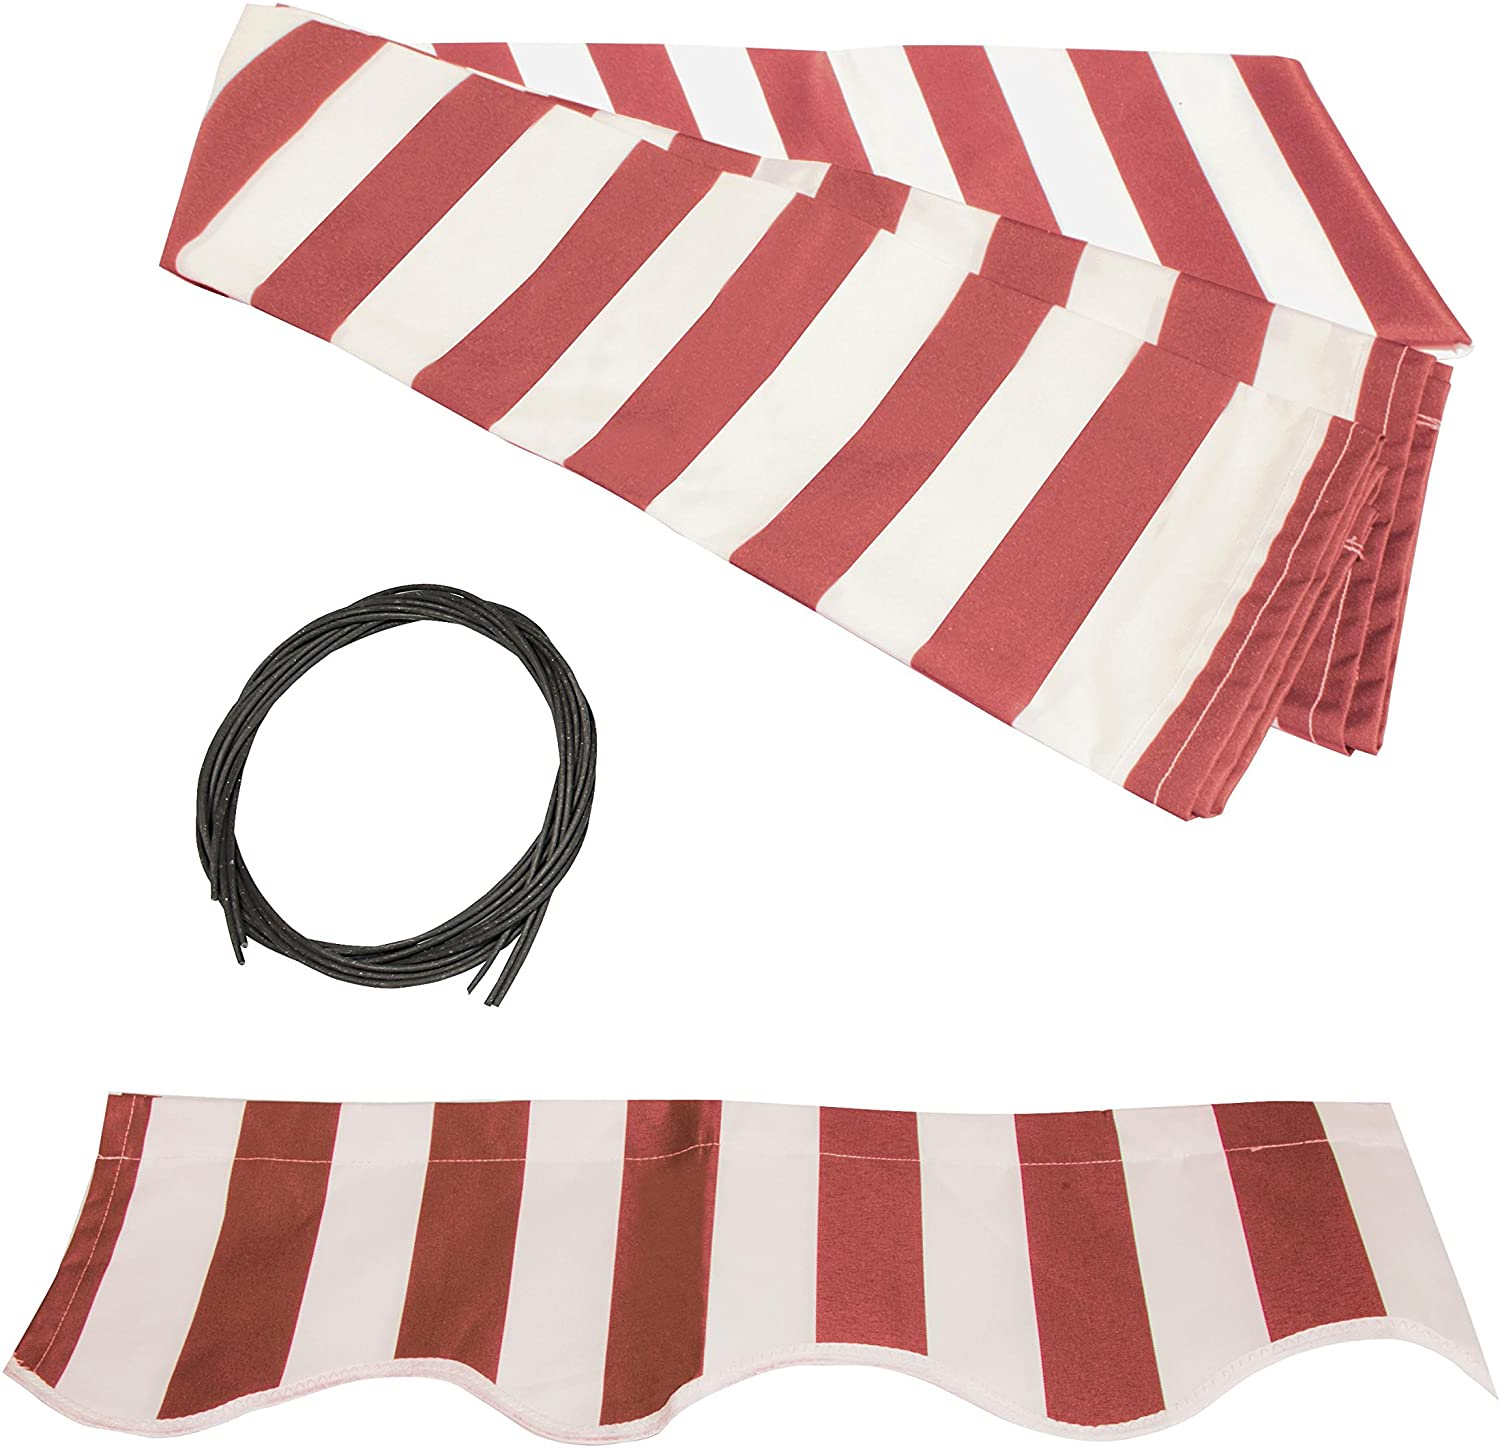 ALEKO FAB10X8REDWT05 Retractable Awning Fabric Replacement 10 x 8 Feet Red and White Striped